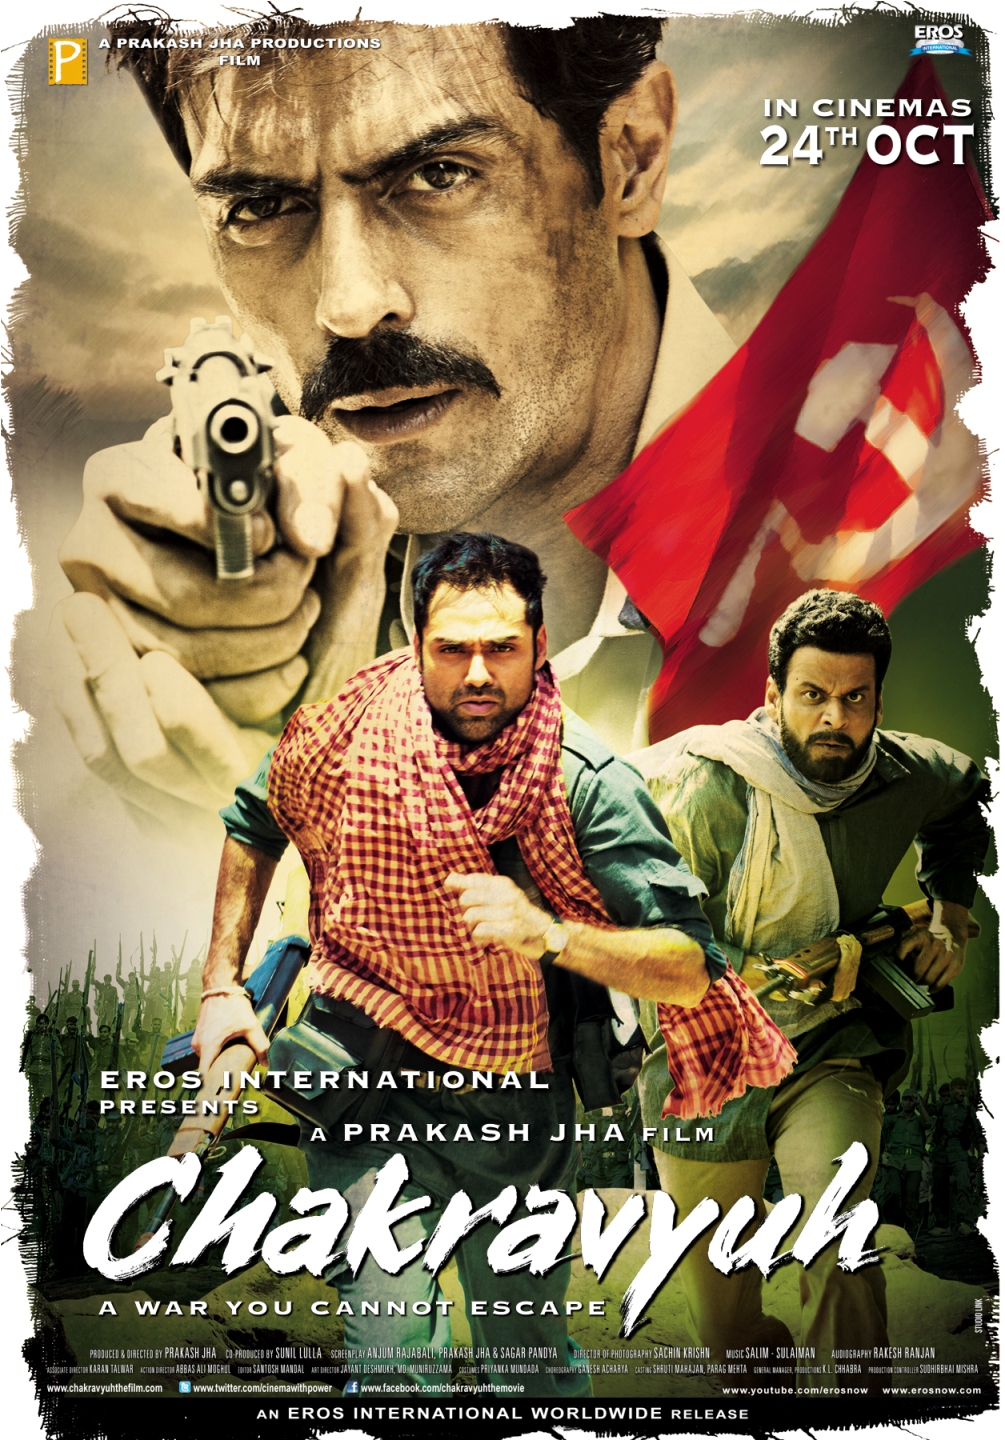 Chakravyuh - Movie Poster #1 (Original)